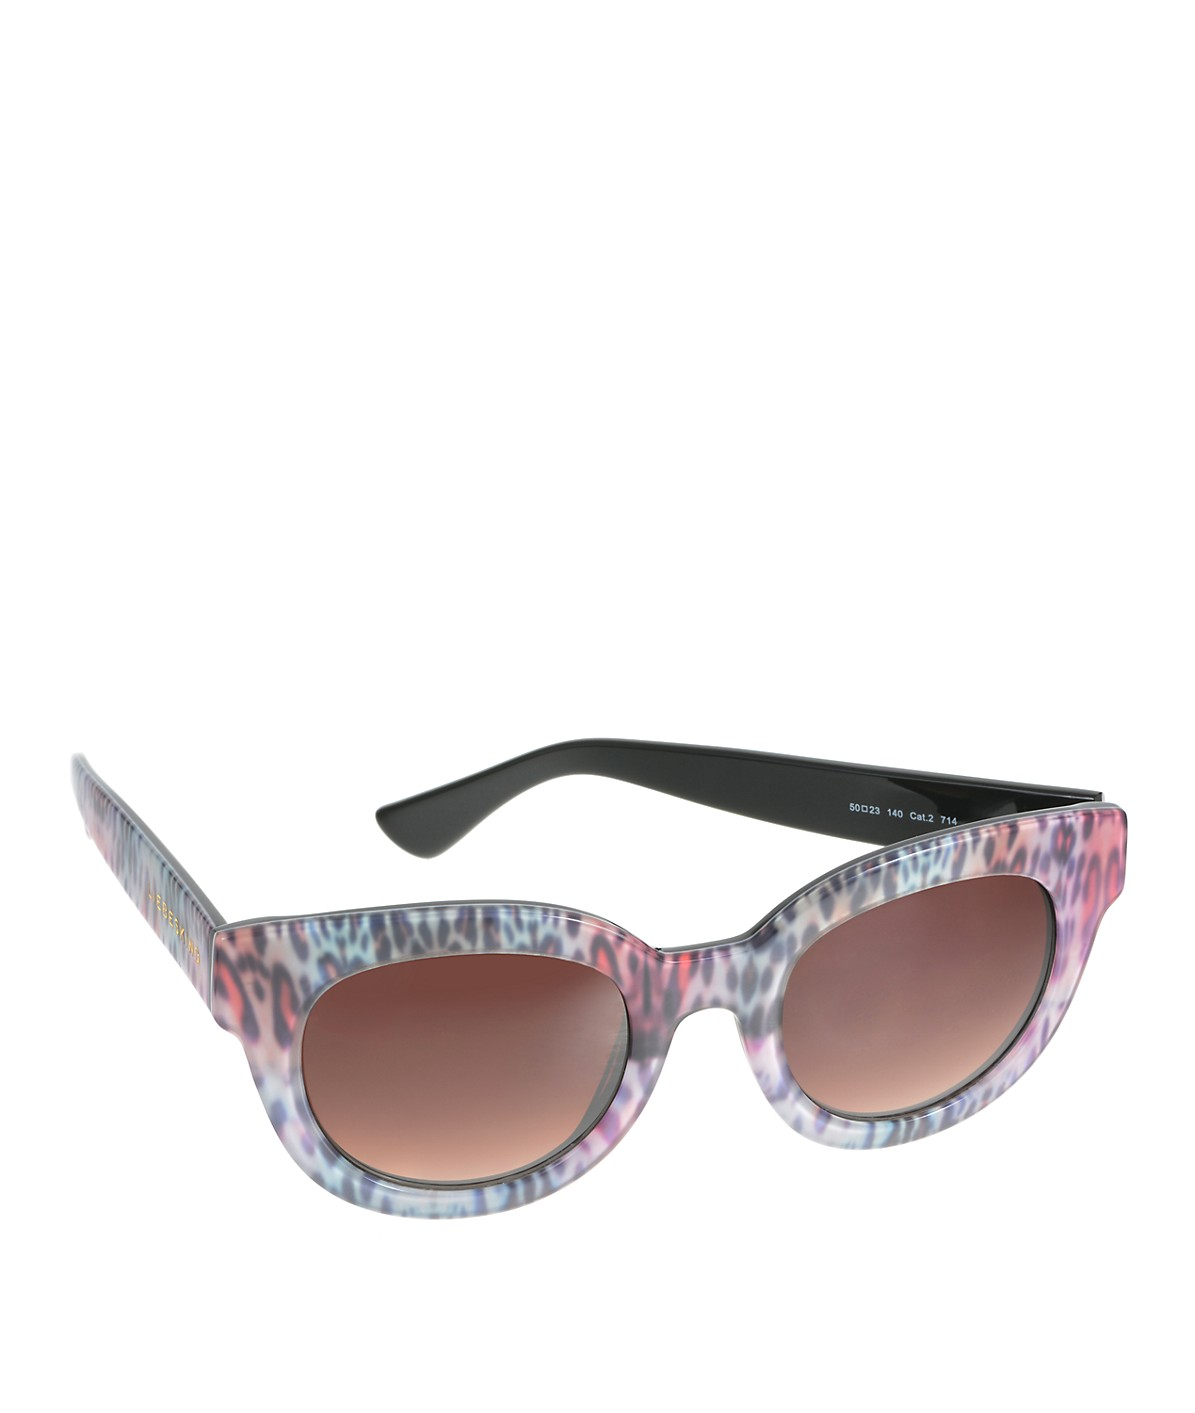 Cat eye sunglasses 10245 from liebeskind